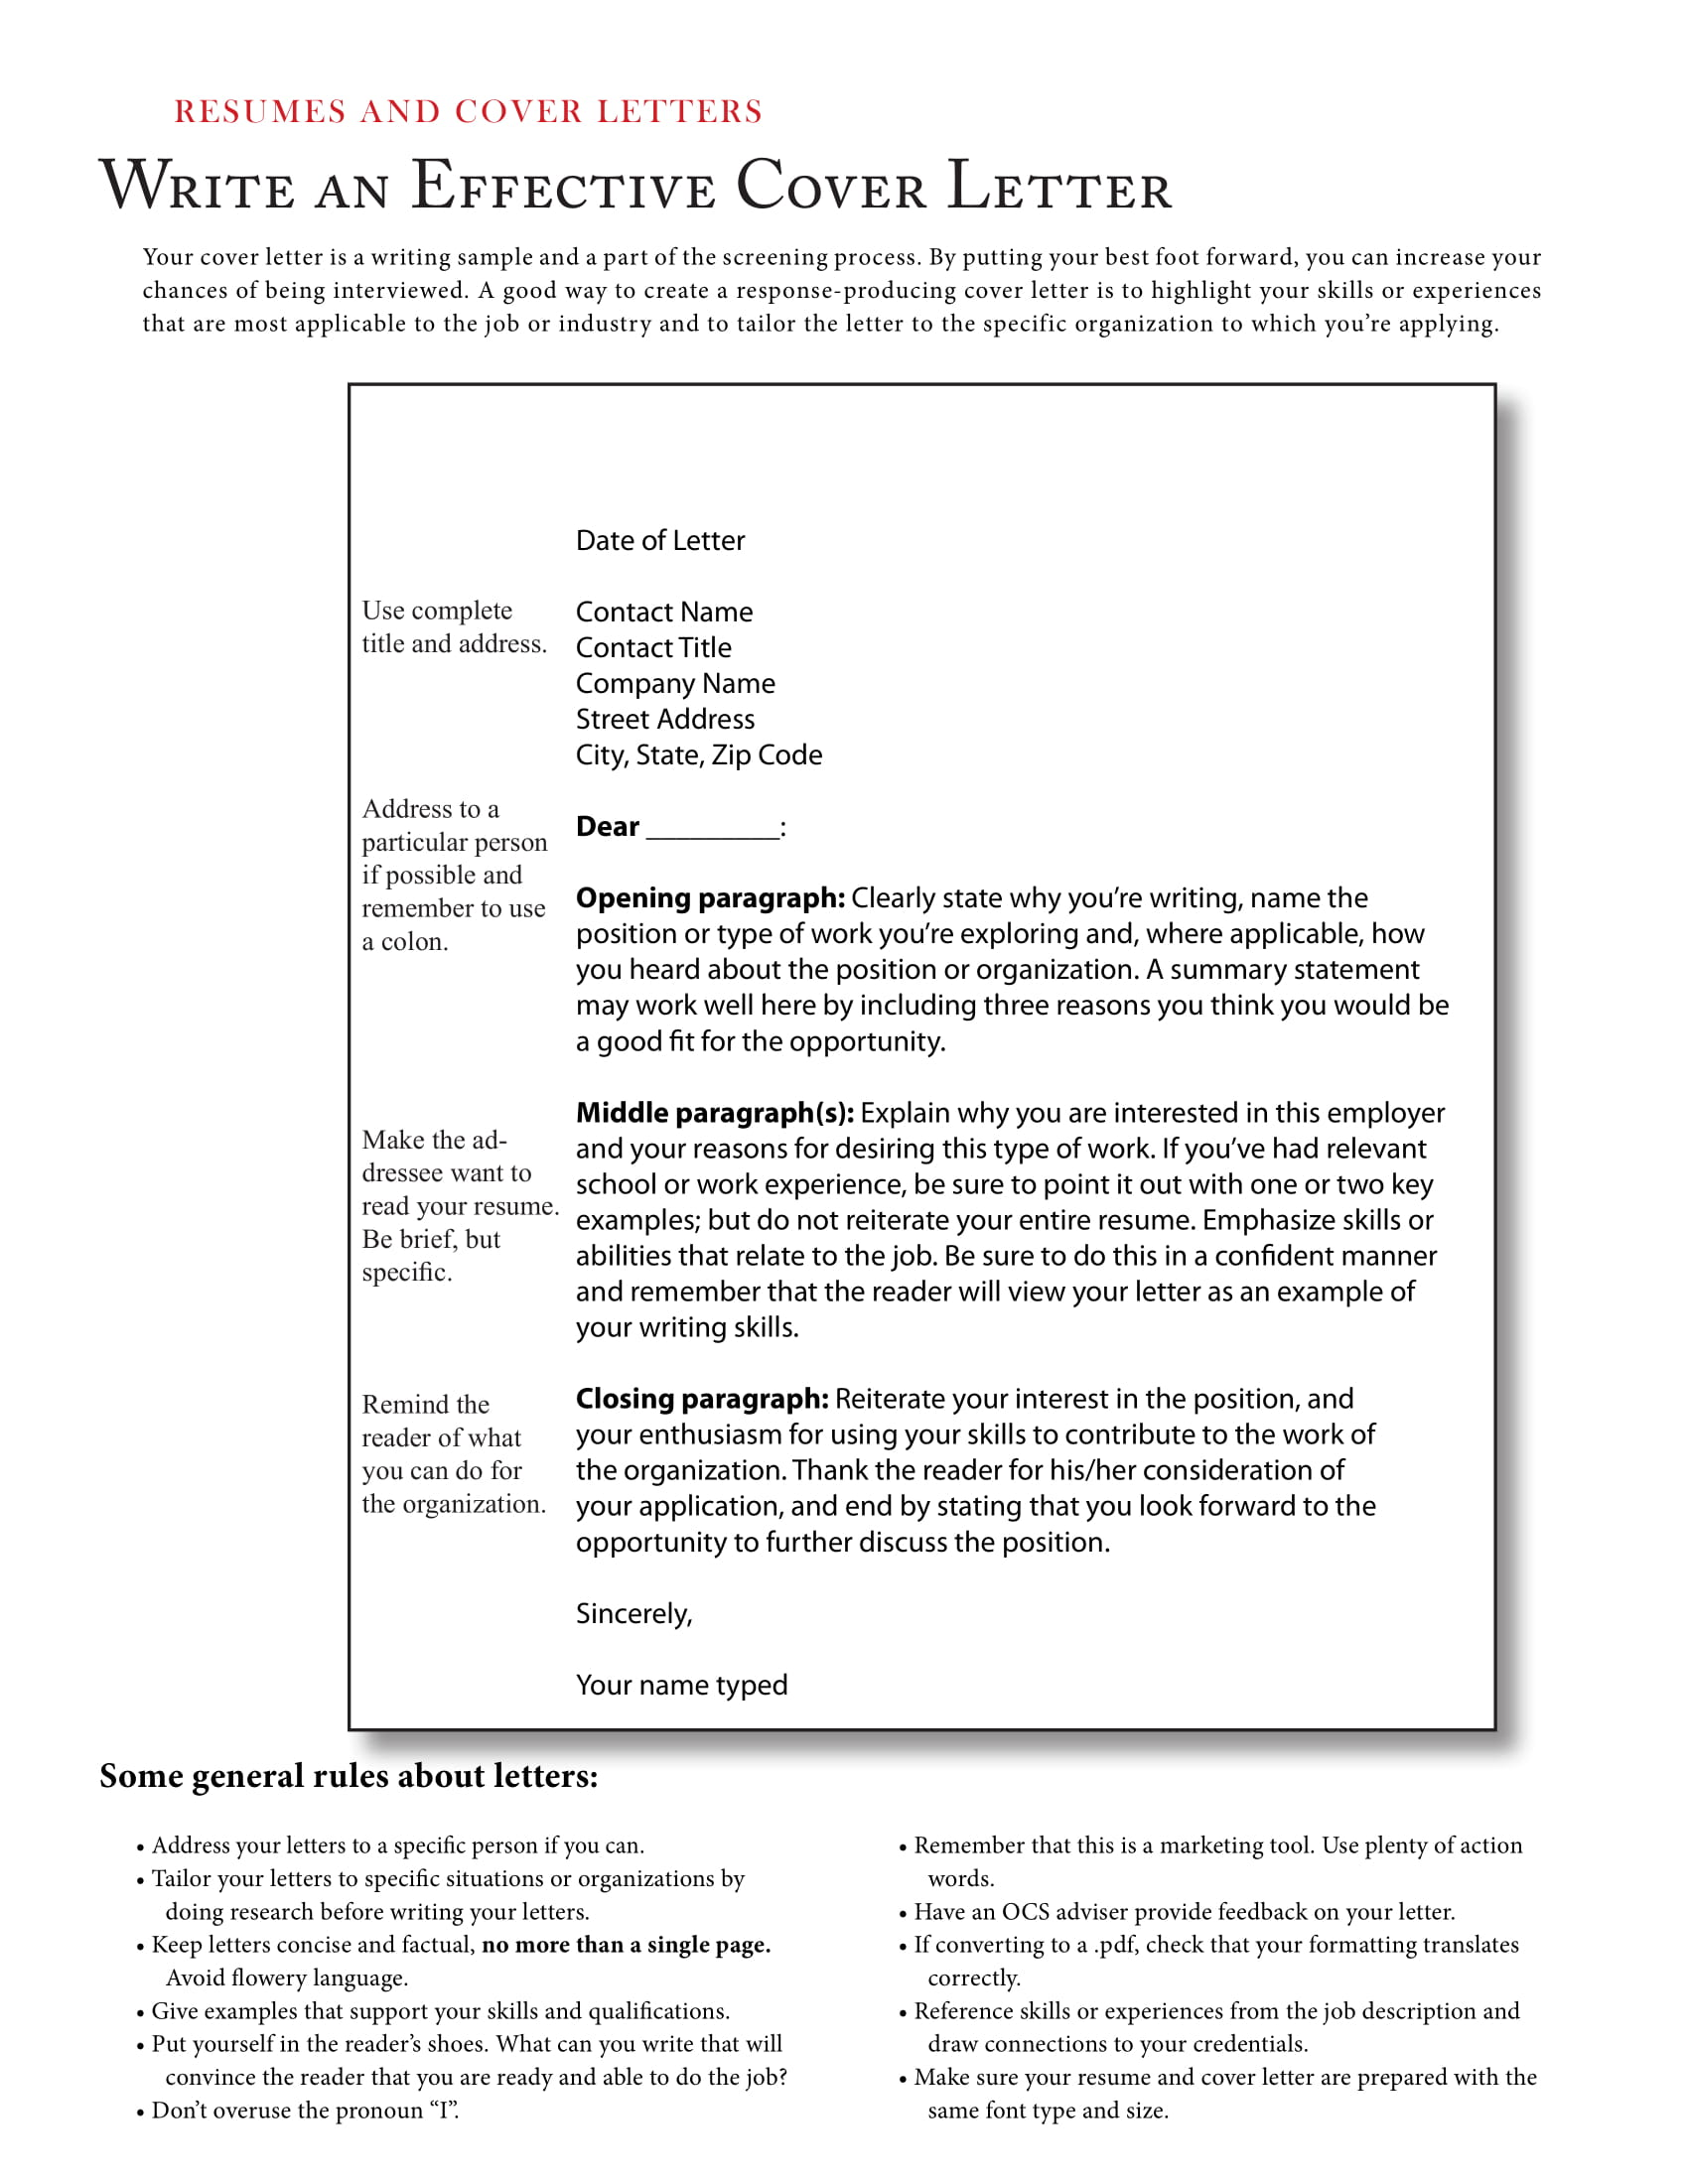 cover letter guide example